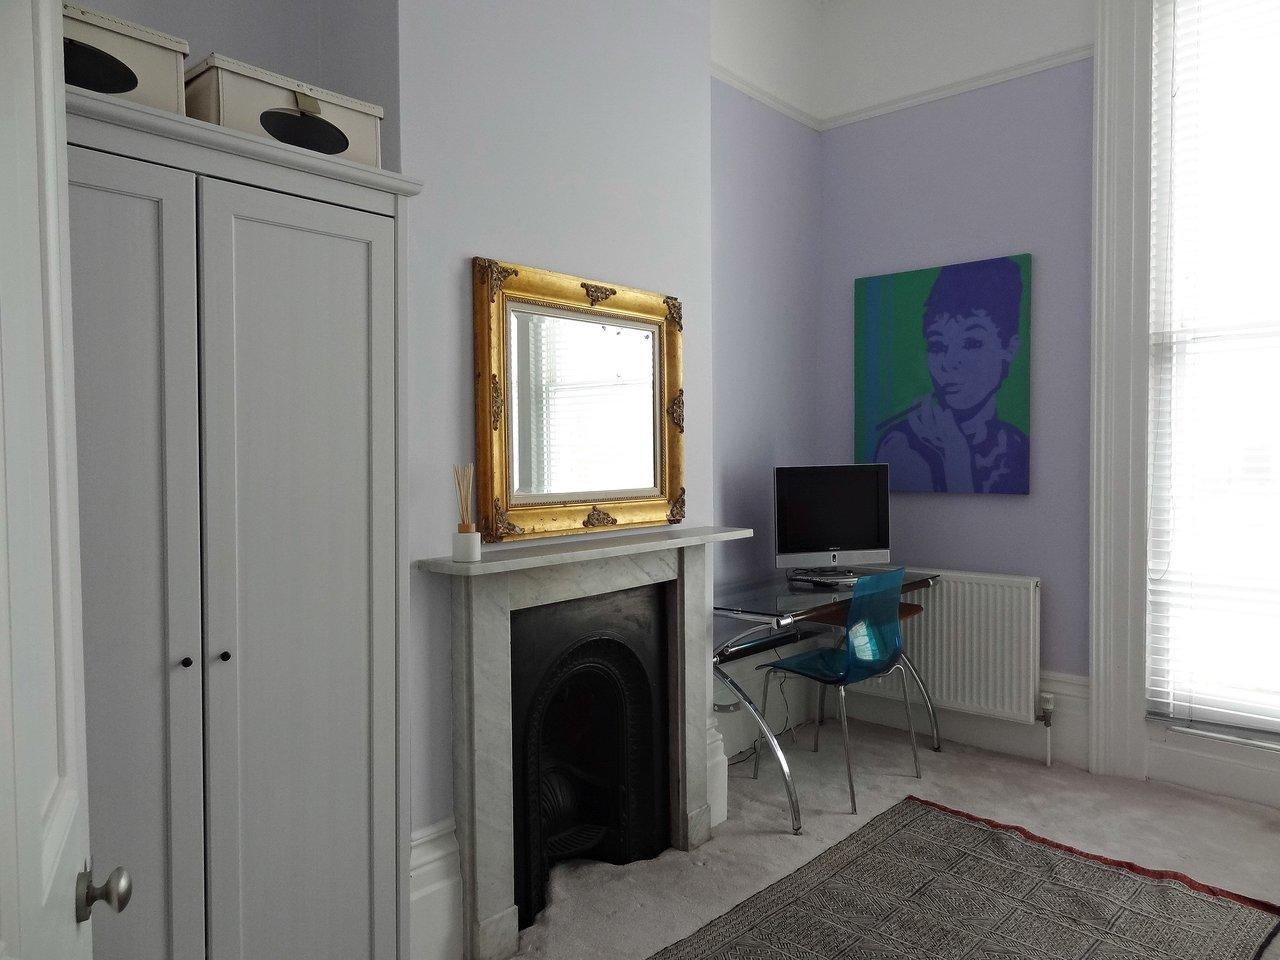 The Grand Seafront Apartment, Brighton & Hove Images - 11